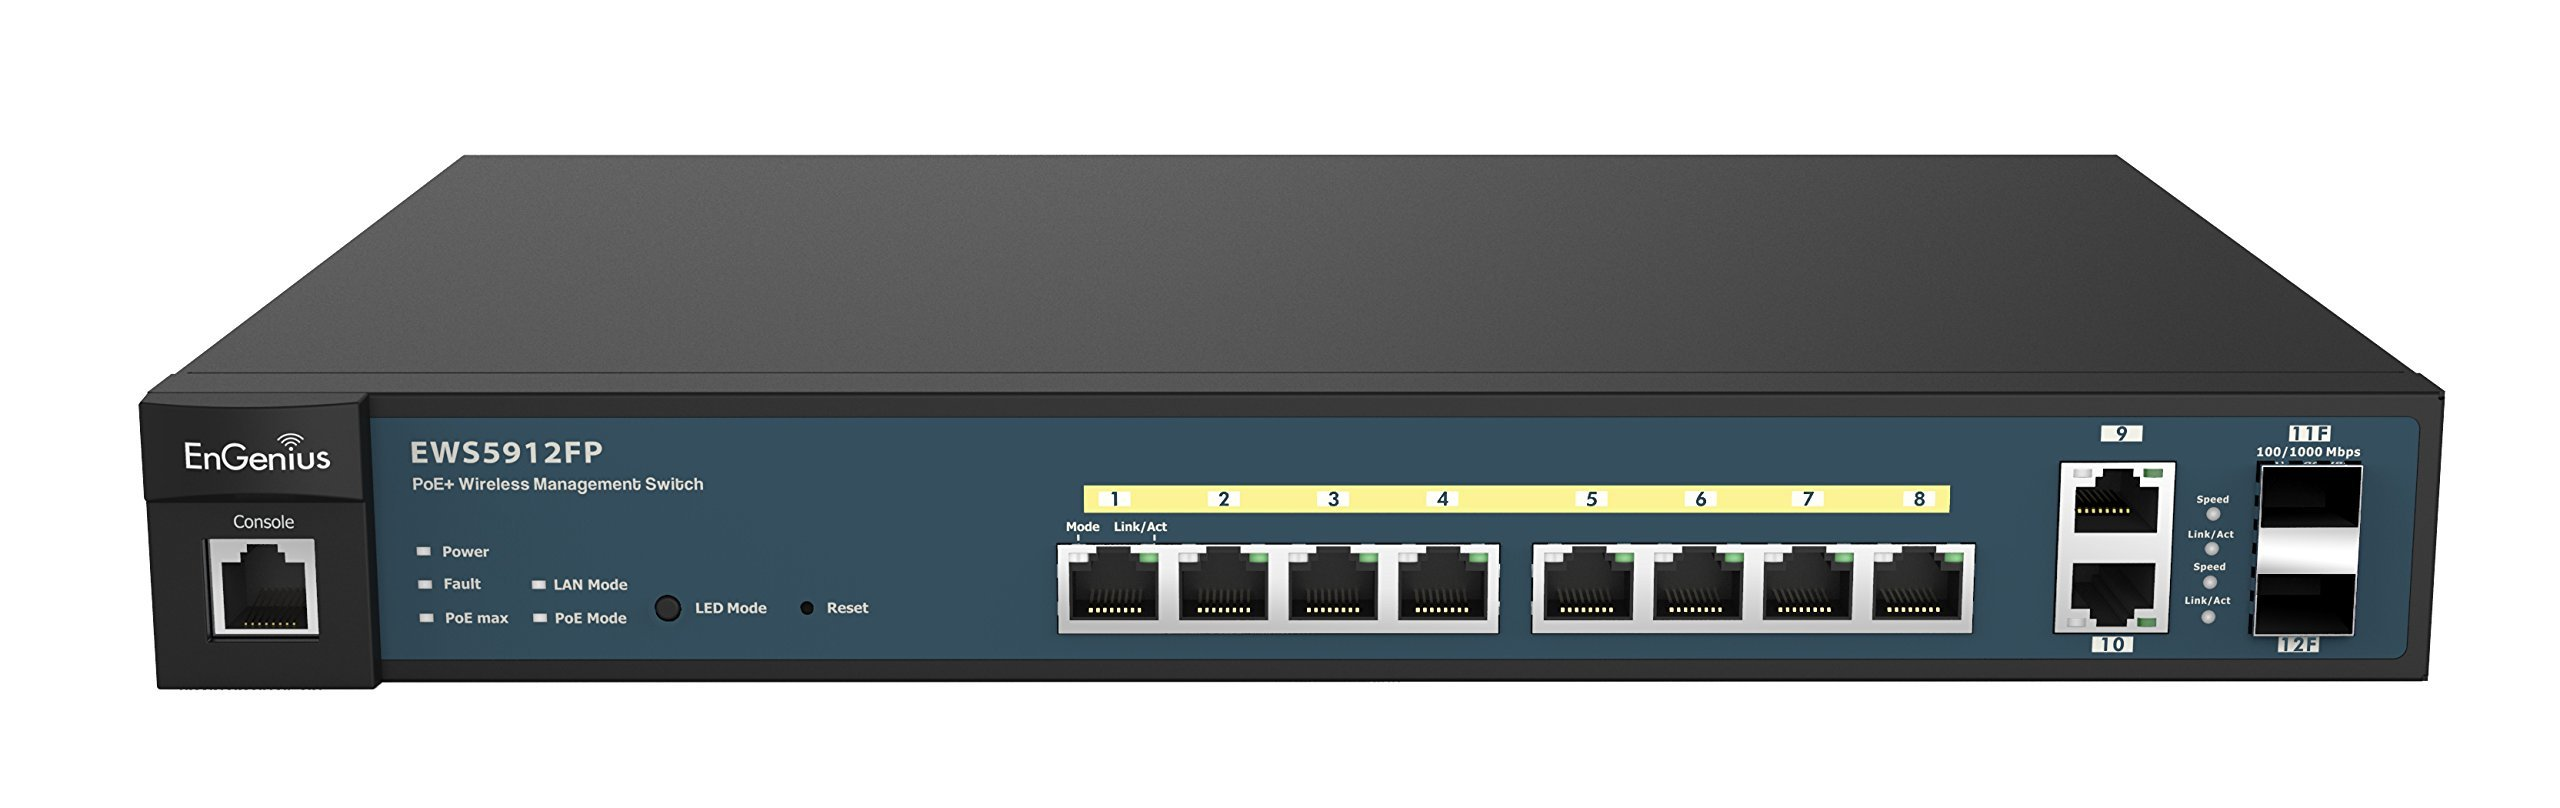 EnGenius  8 Gigabit 802.3at/af PoE+ Port Full Power Layer 2 Managed Switch, 2 SFP & 2 Uplink Ports, 130W PoE Budget  with Centralized Network Management [managed up to 50 EnGenius APs] (EWS5912FP)